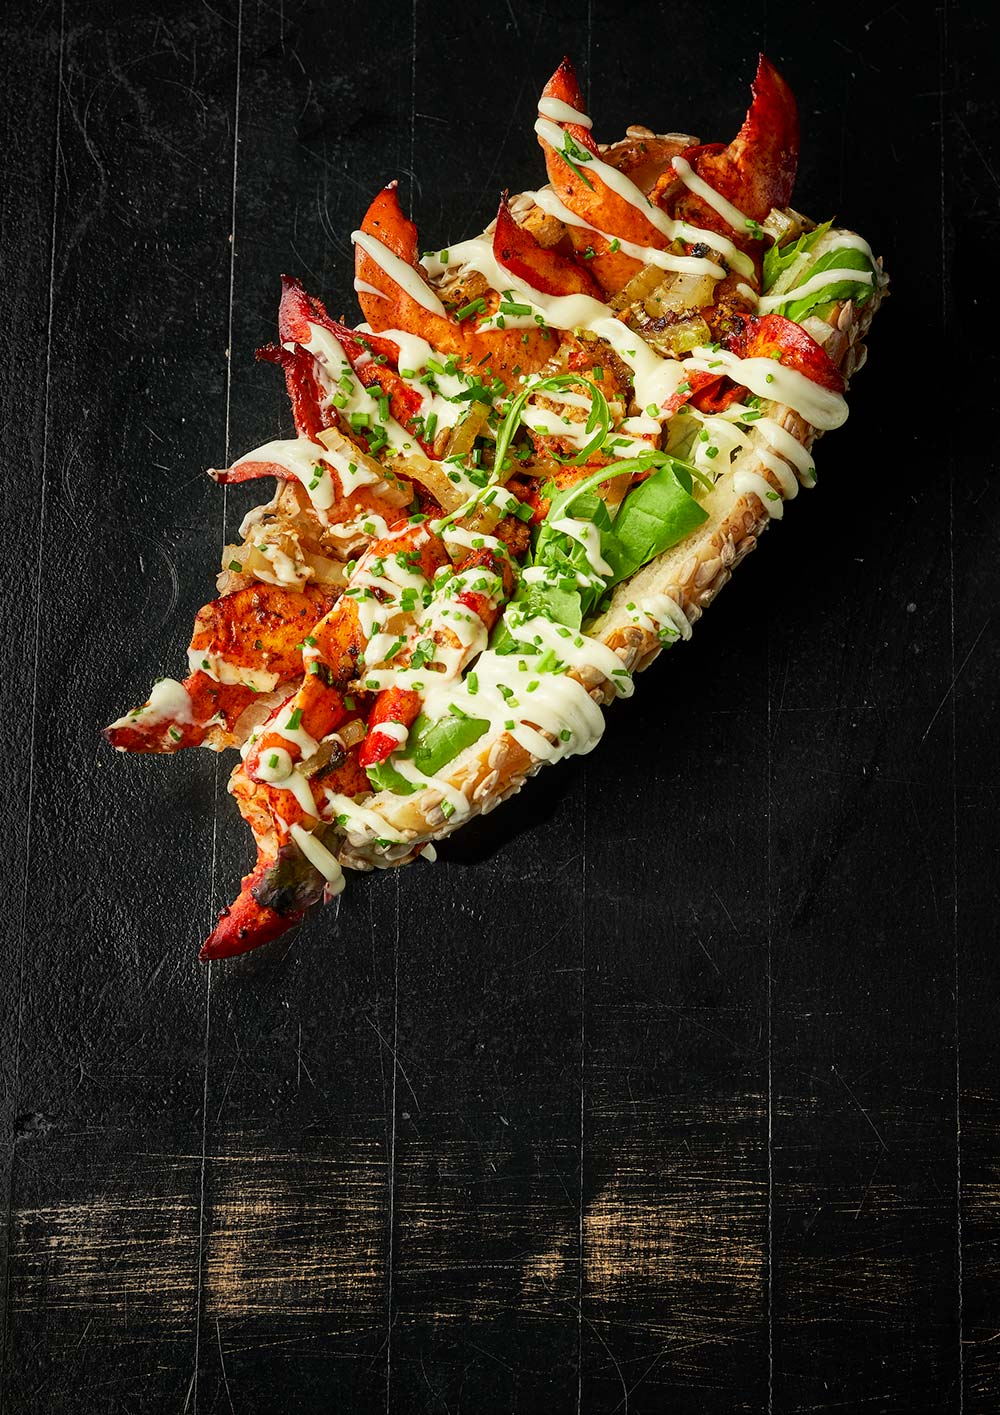 Food lobster roll on a black table with yellow scratches food commercial photography Philipp Burkart young photographer in Hamburg